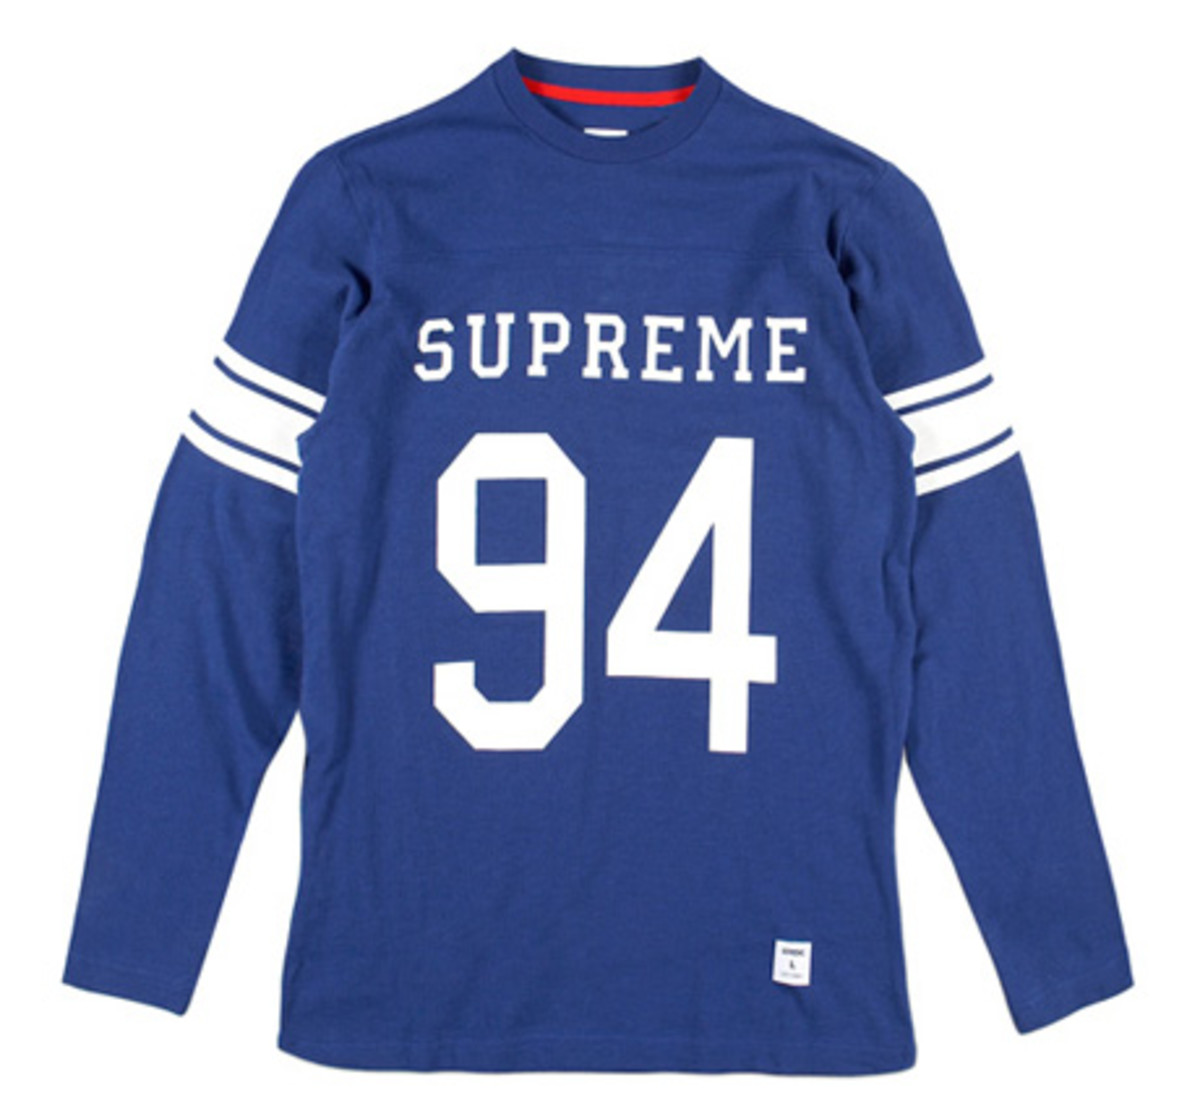 Supreme - Fall/Winter 2008 - T-Shirts + Knits - 3